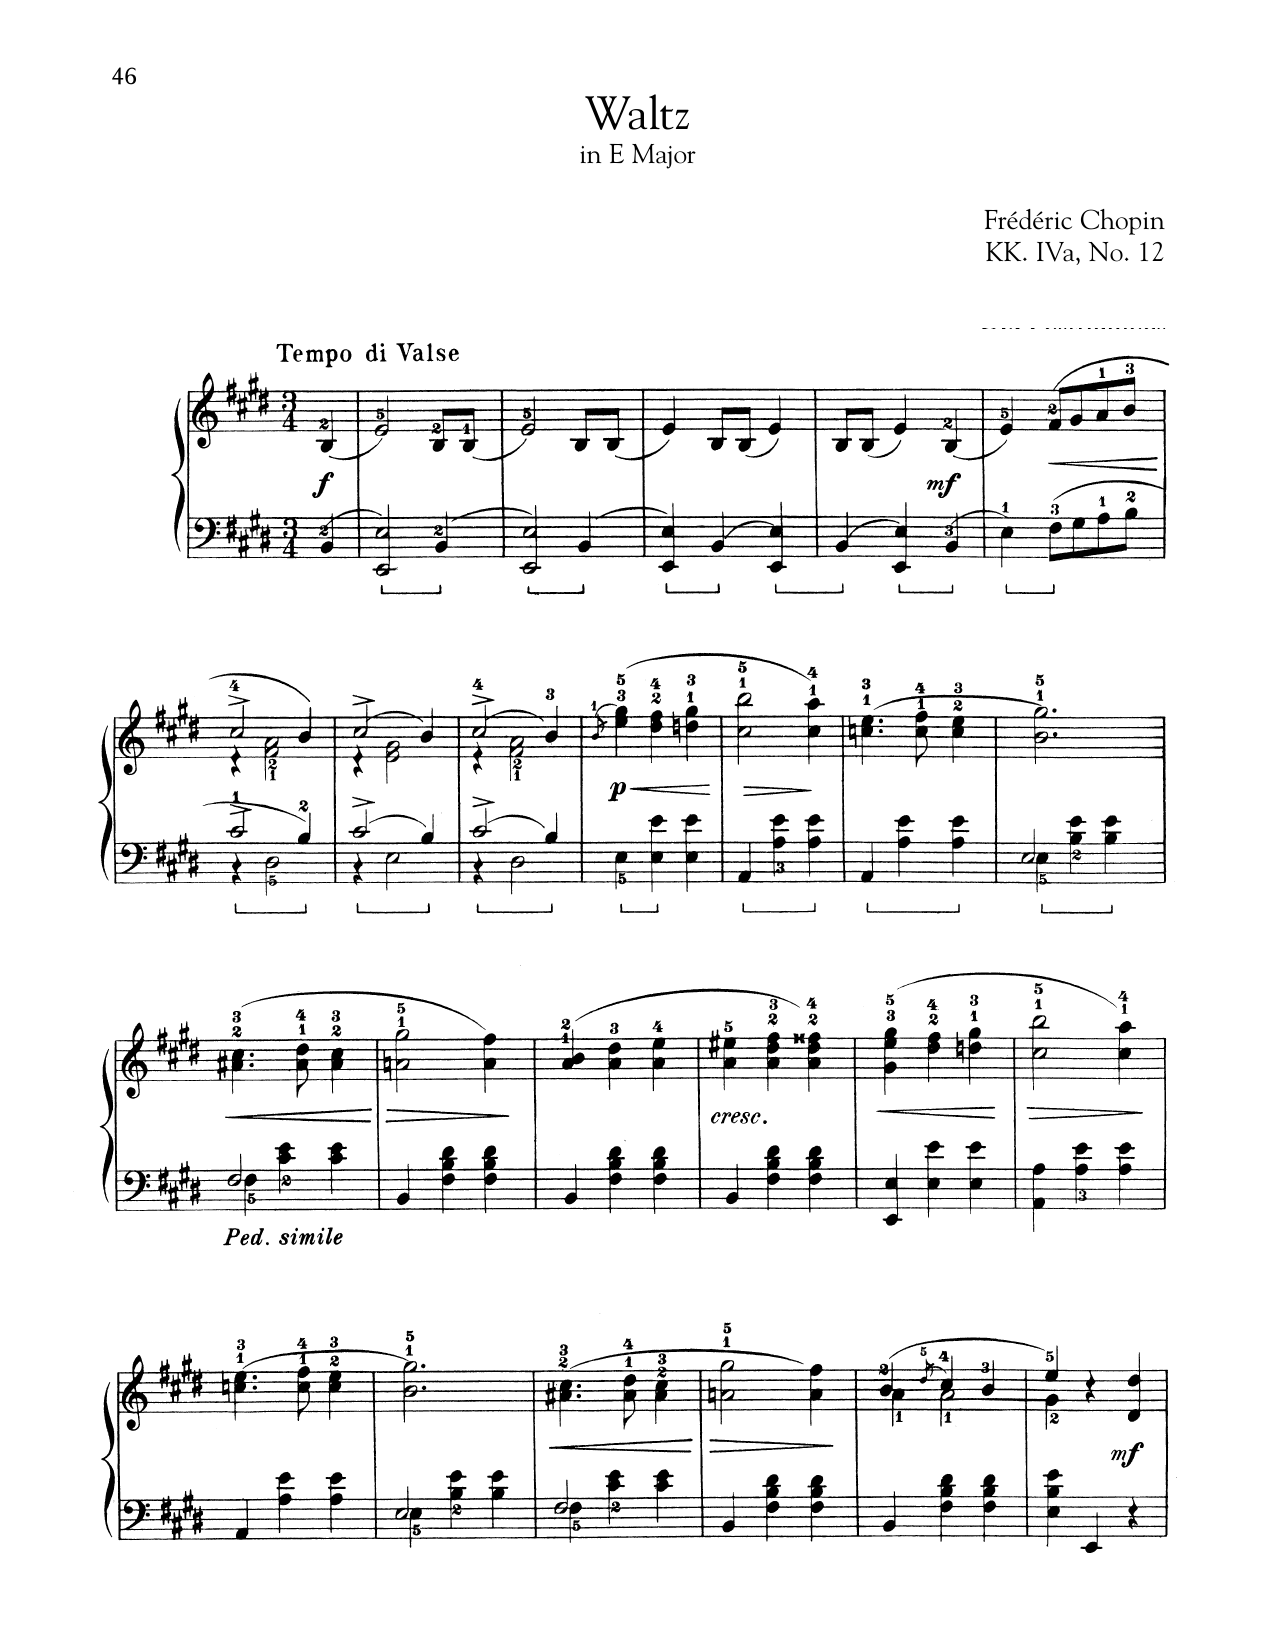 Download Frederic Chopin 'Waltz In E Major, KK. IVa, No. 12' Digital Sheet Music Notes & Chords and start playing in minutes